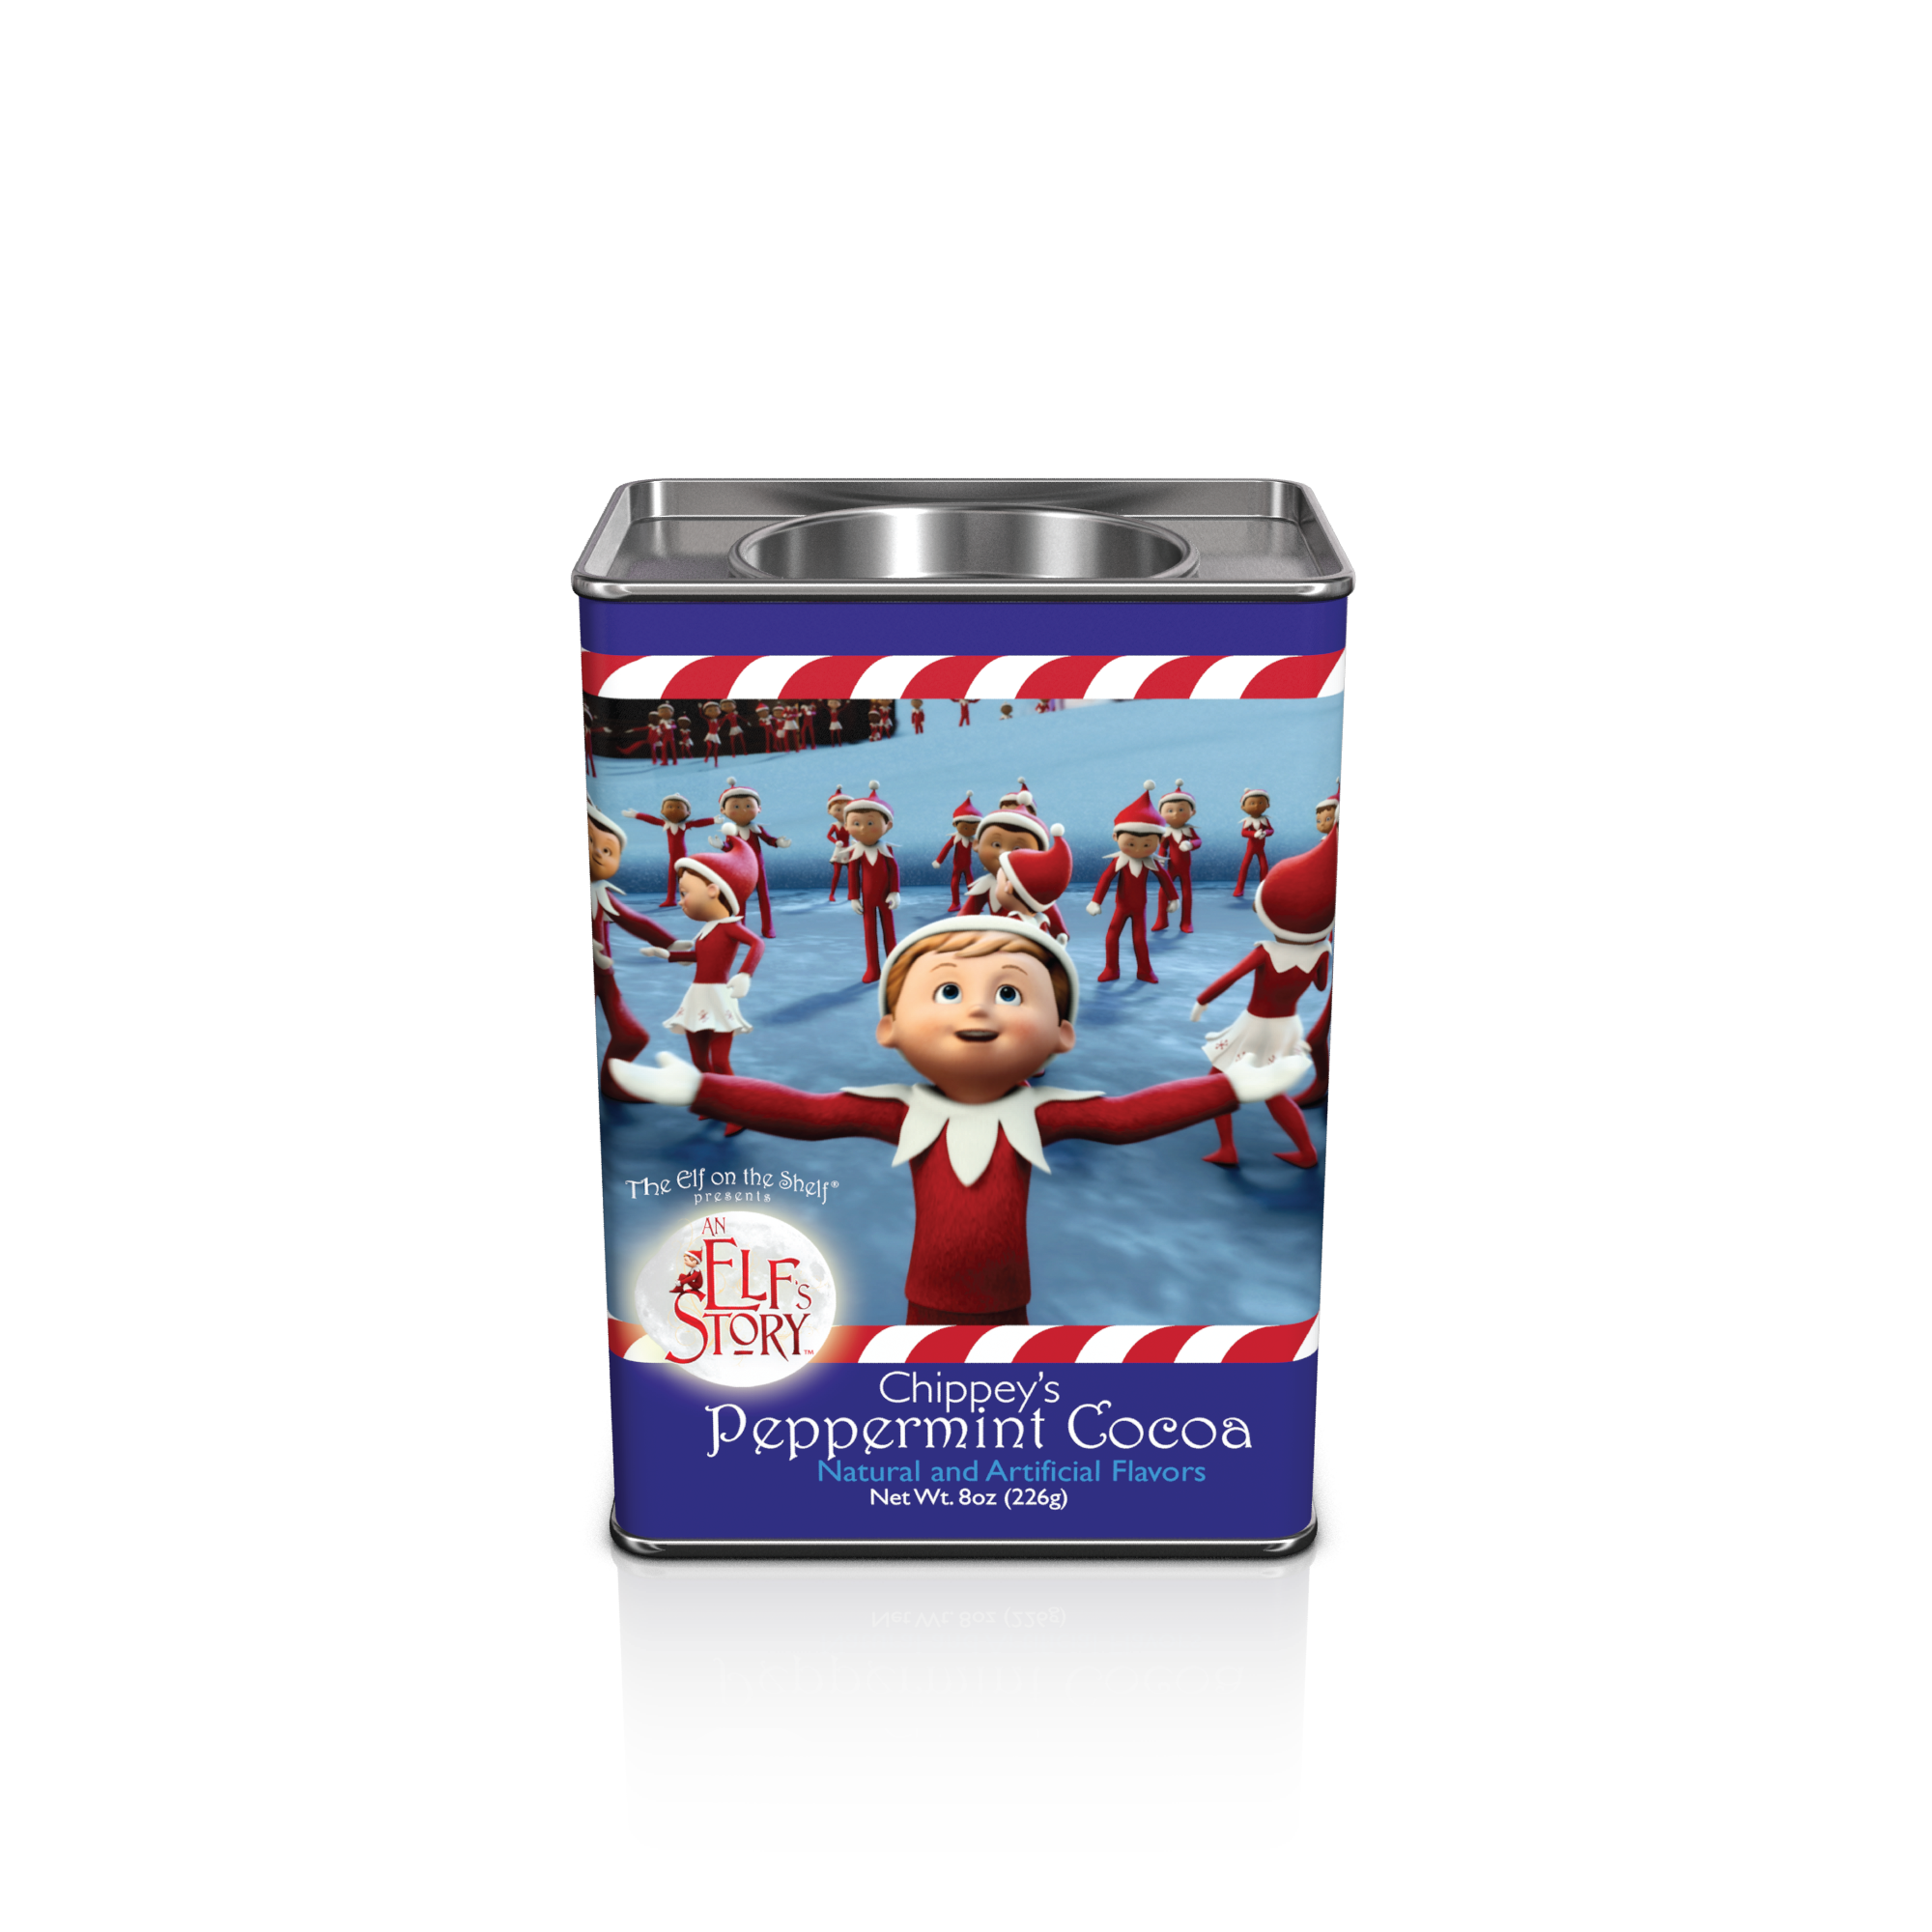 Elf On The Shelf® Chippey's Peppermint Cocoa (8oz Rectangle Tin) (CLOSEOUT - BEST BY JULY 2020)